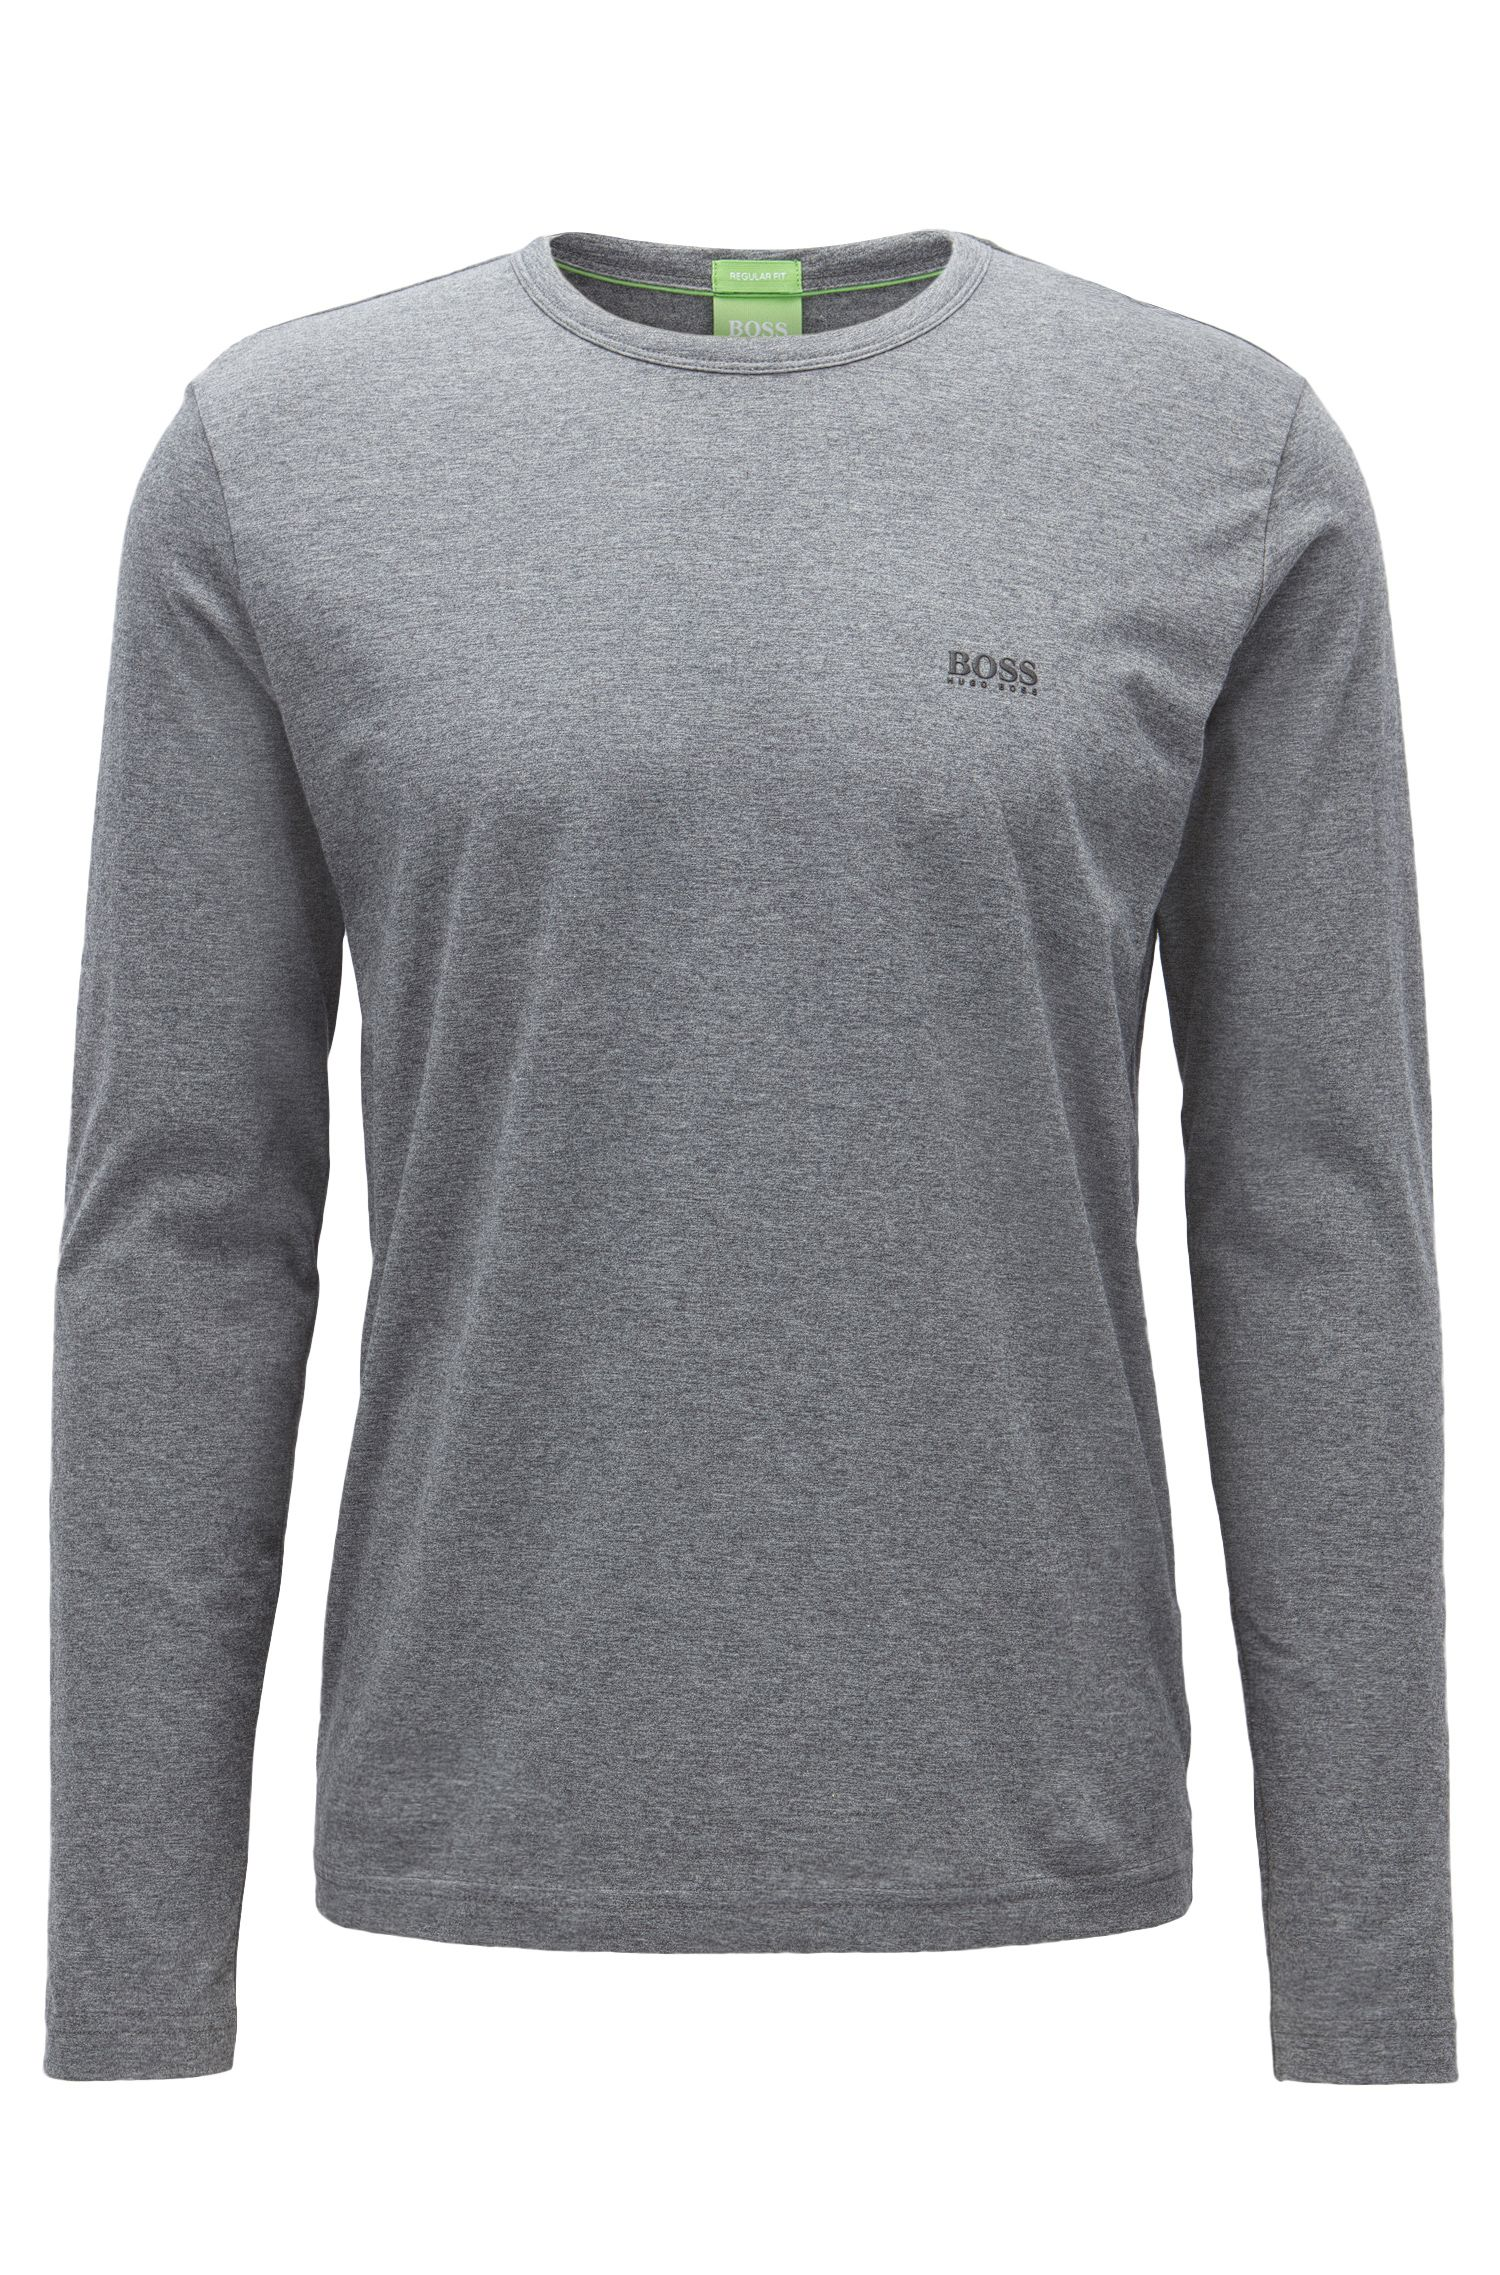 Regular-fit long-sleeved cotton T-shirt